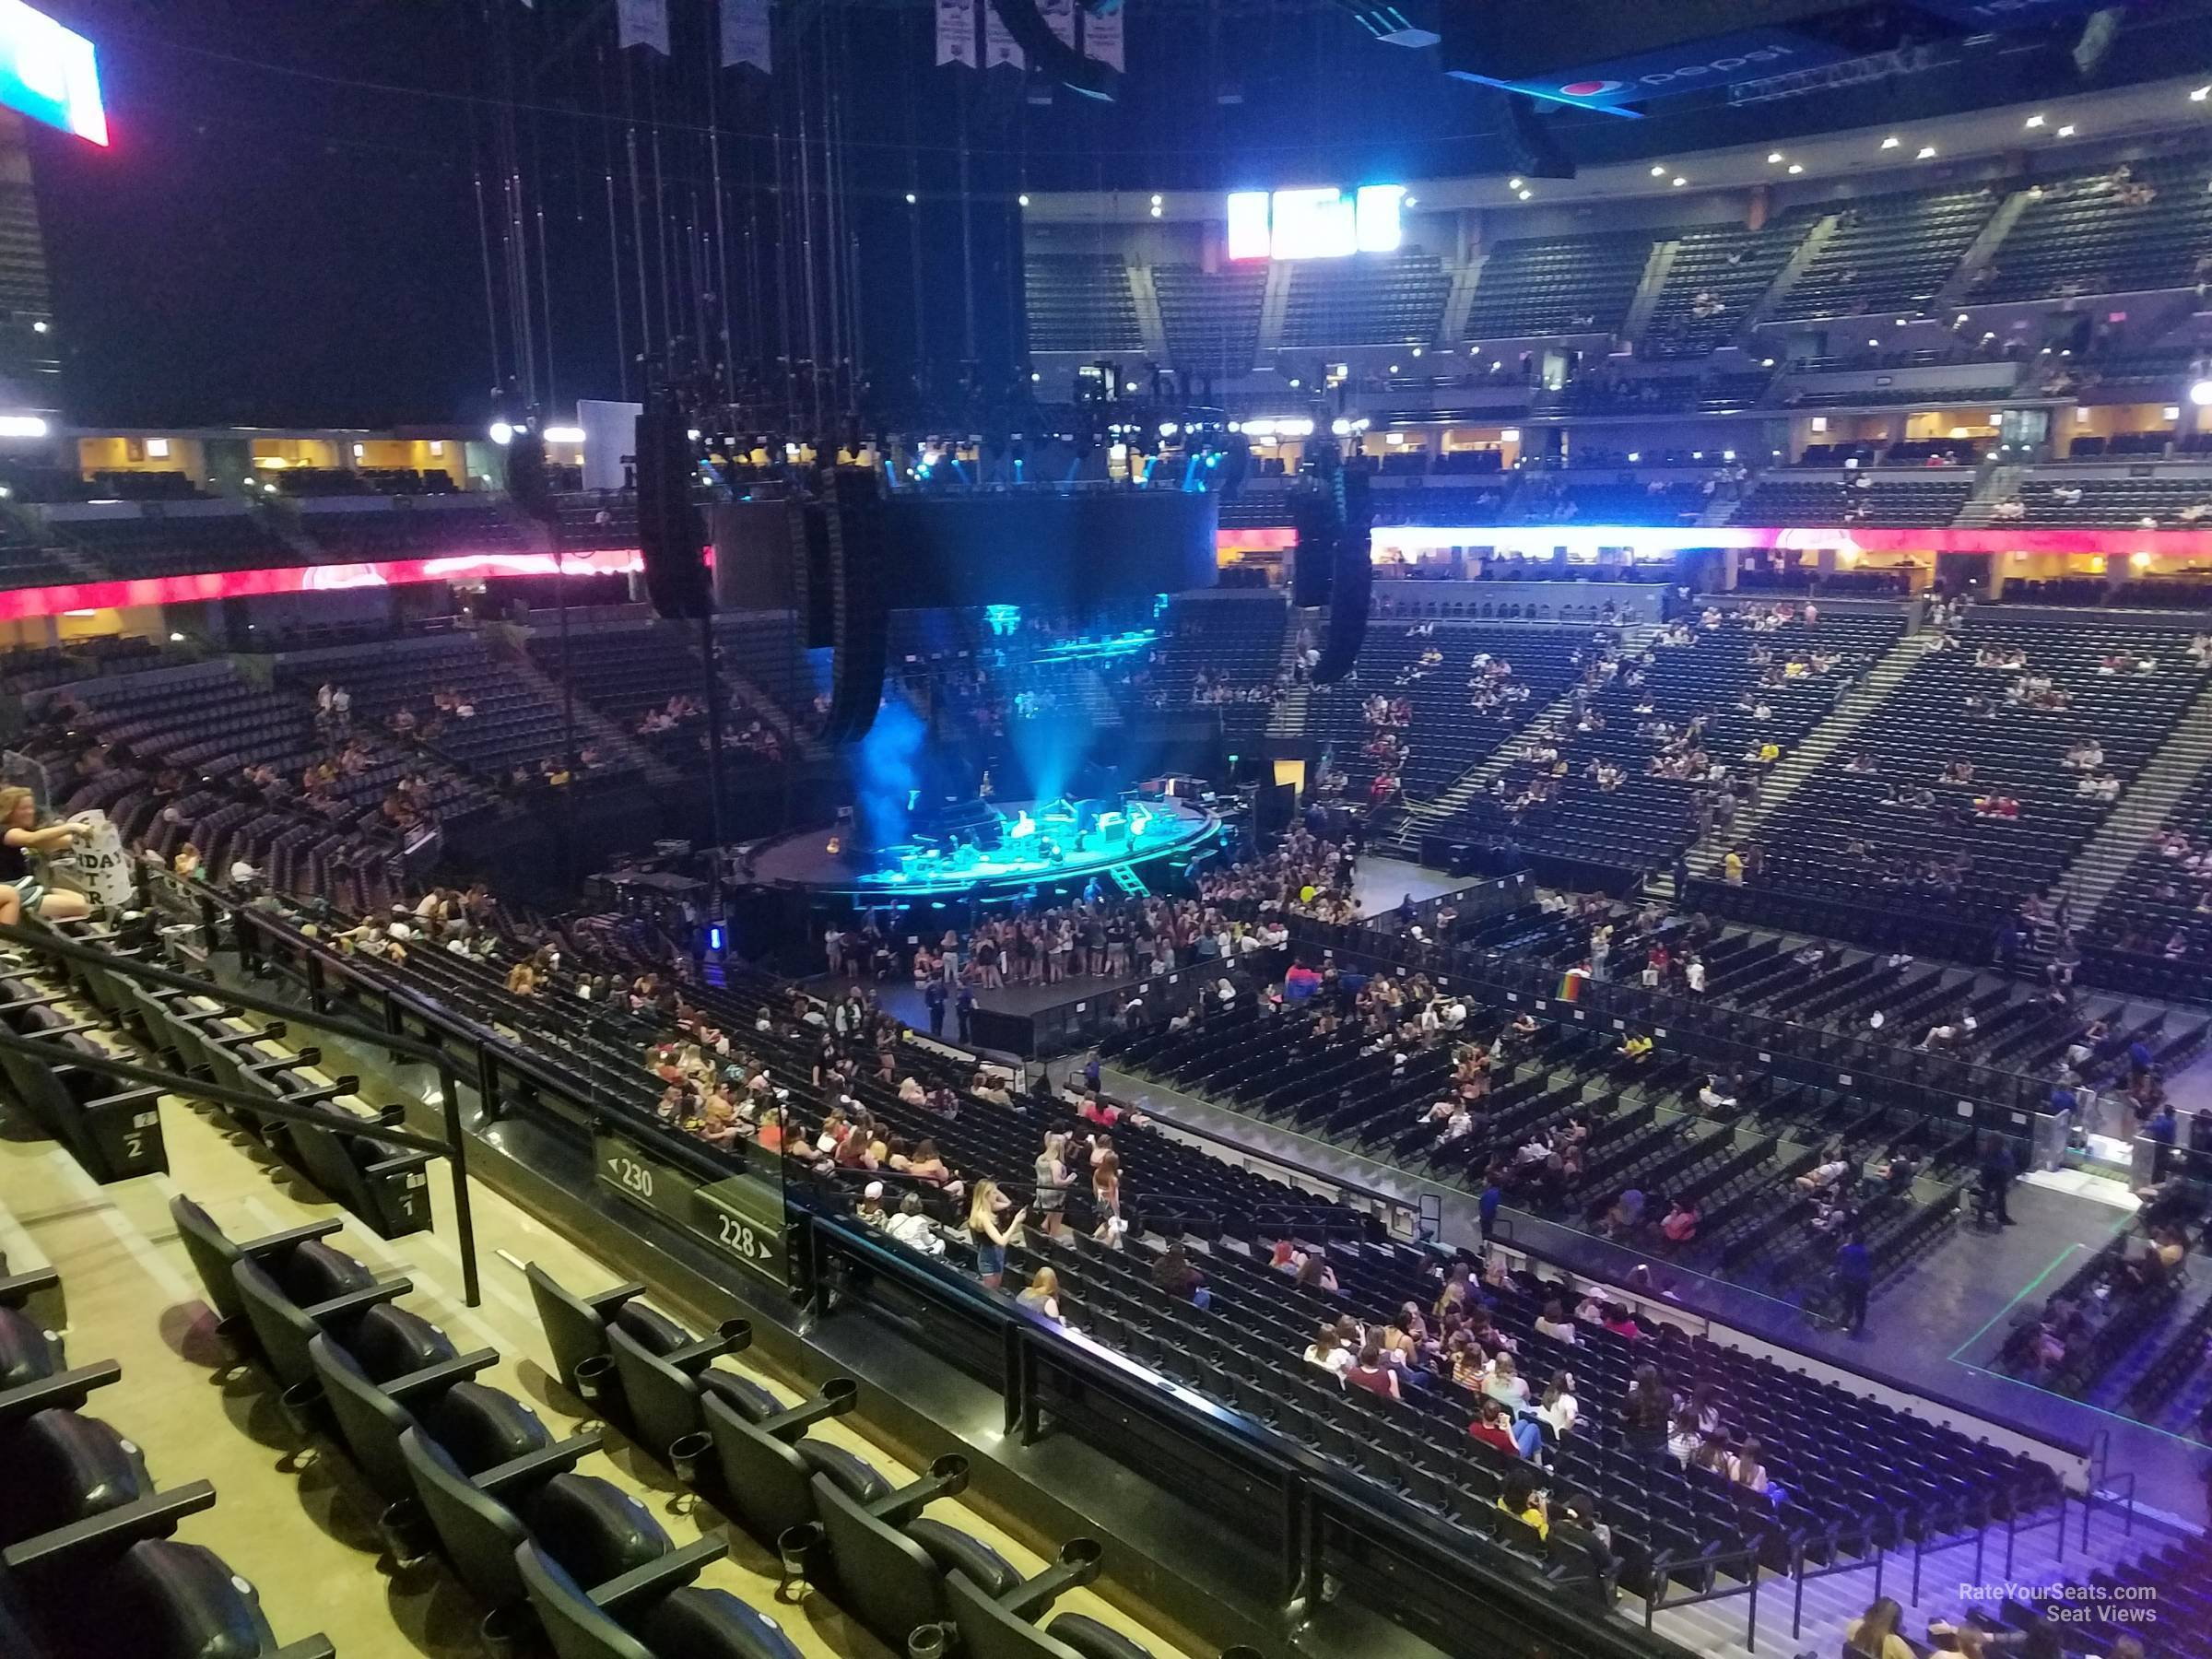 Pepsi Center: Pepsi Center Section 228 Concert Seating